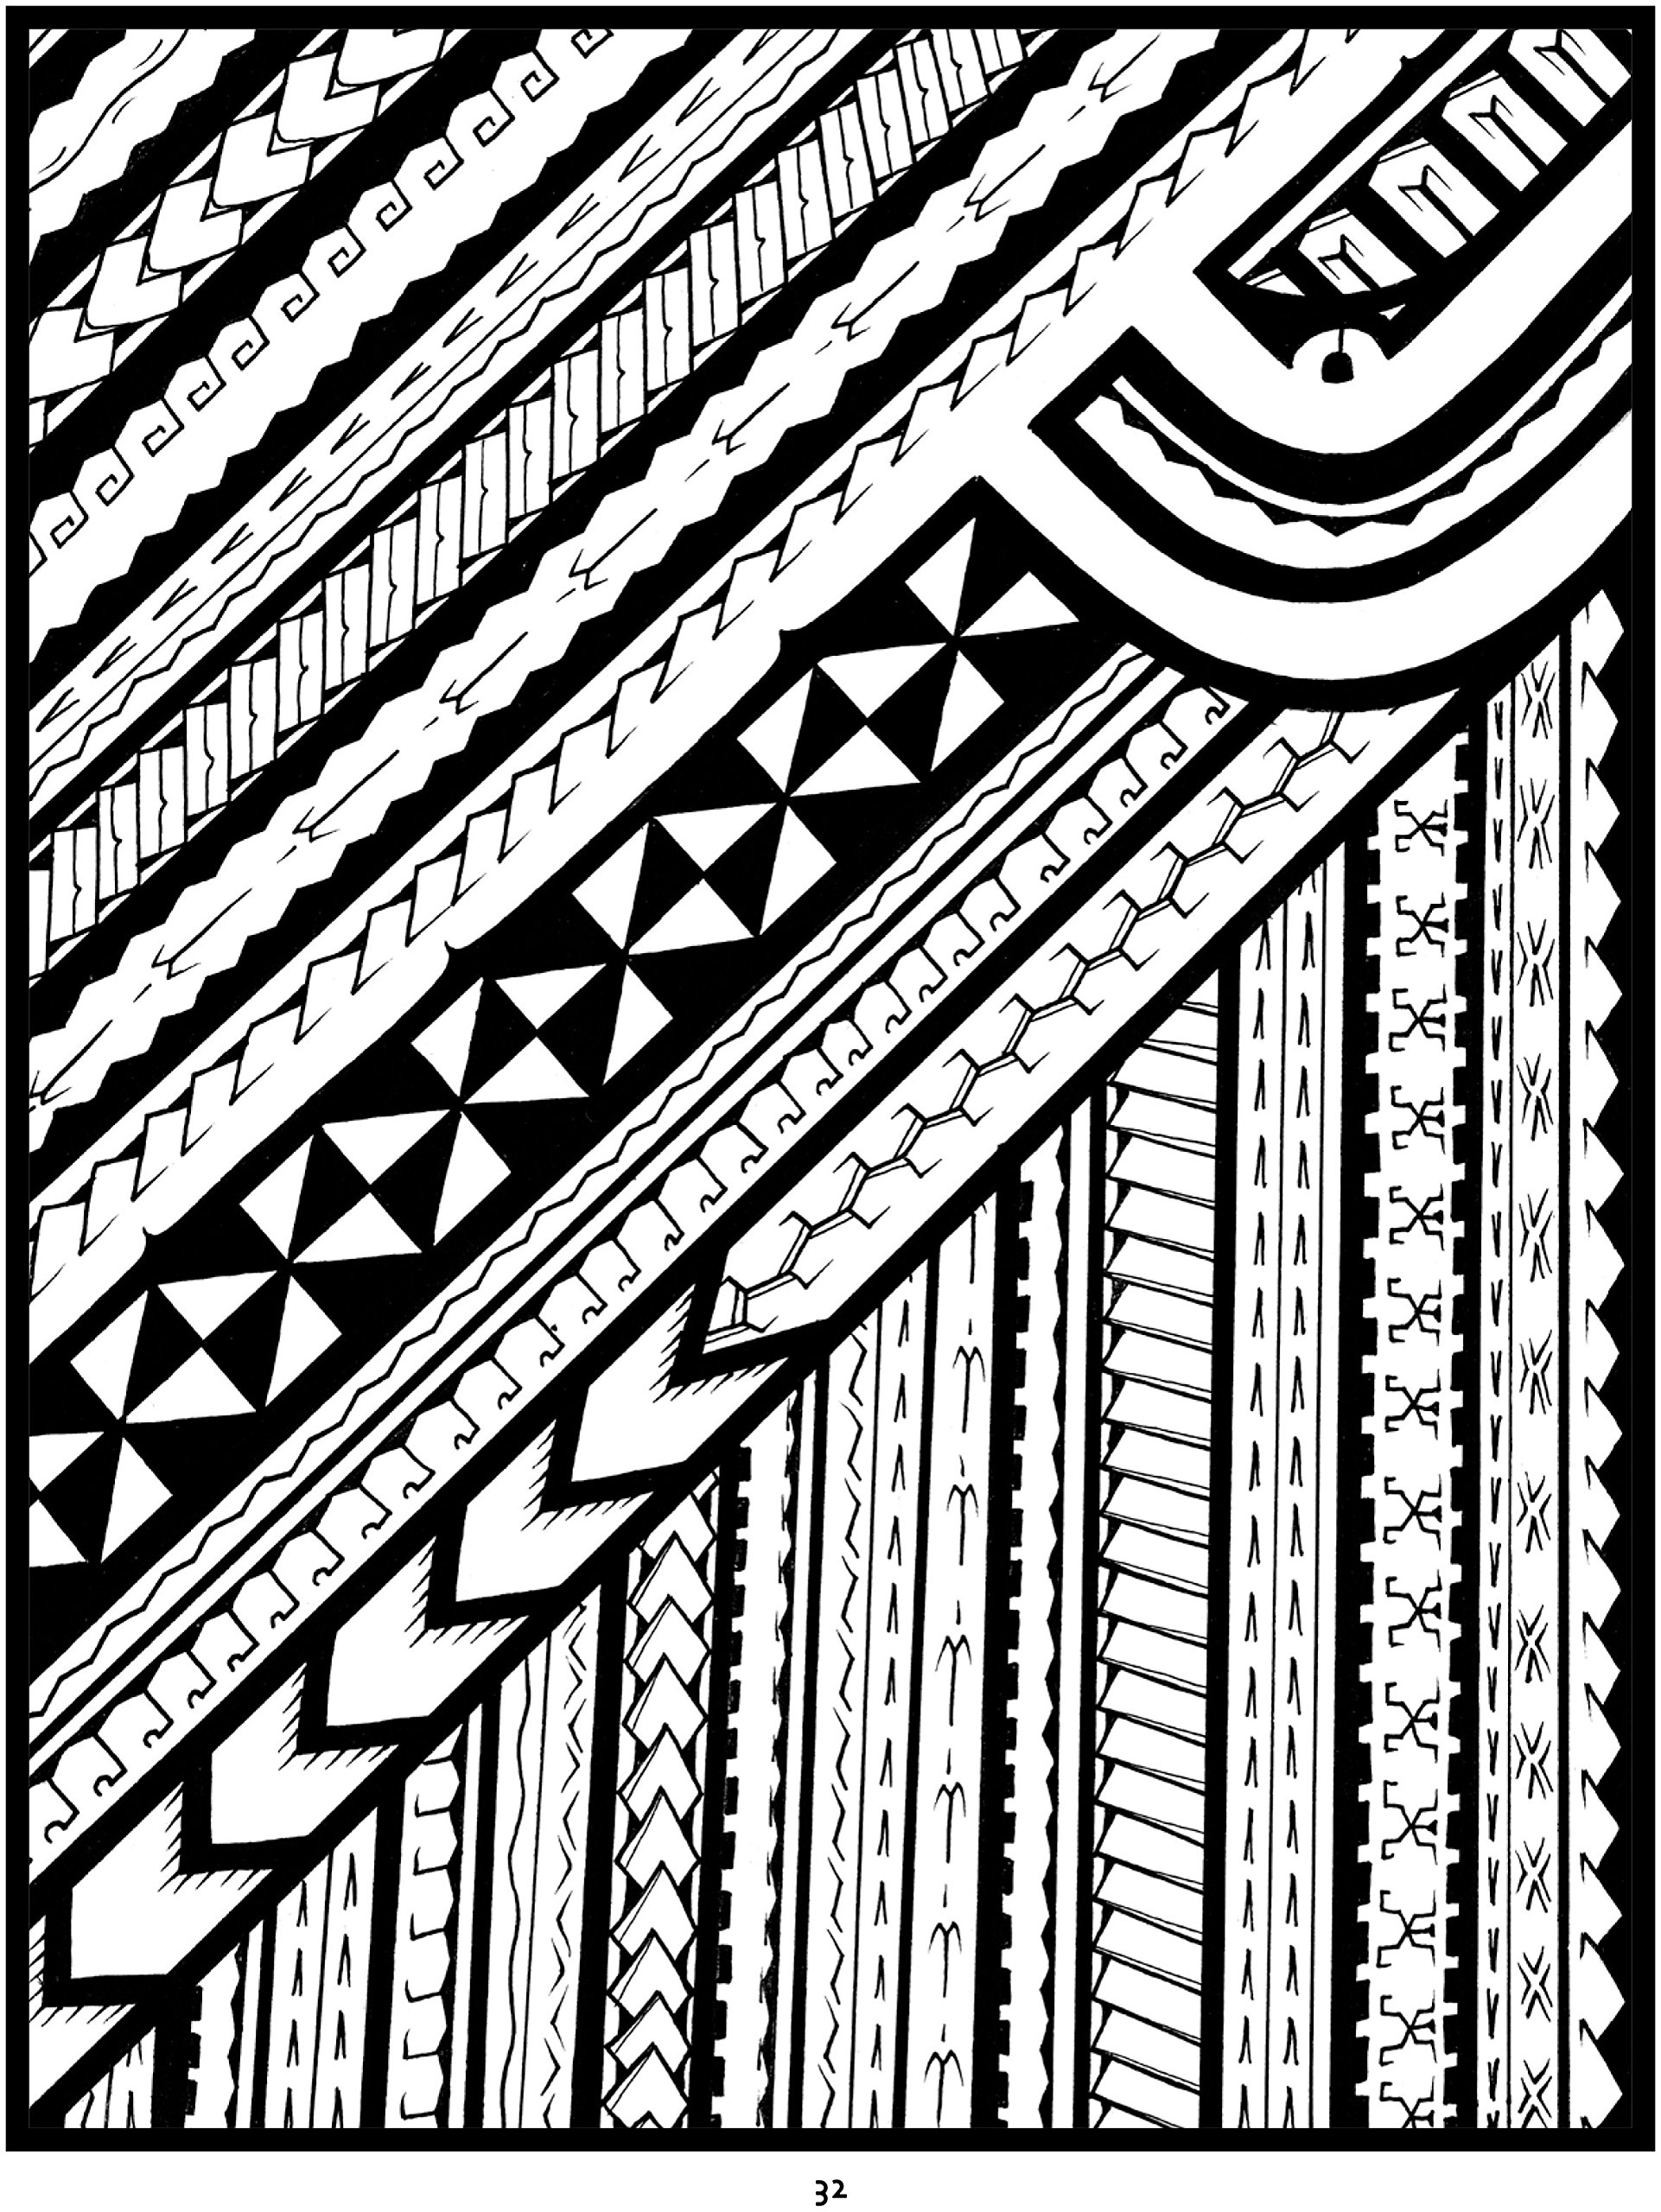 534353c8c Amazon.com: Tattoo: A Coloring Book of Polynesian Art by Anthony J. Tenorio  (0717195246570): Anthony J. Tenorio: Books